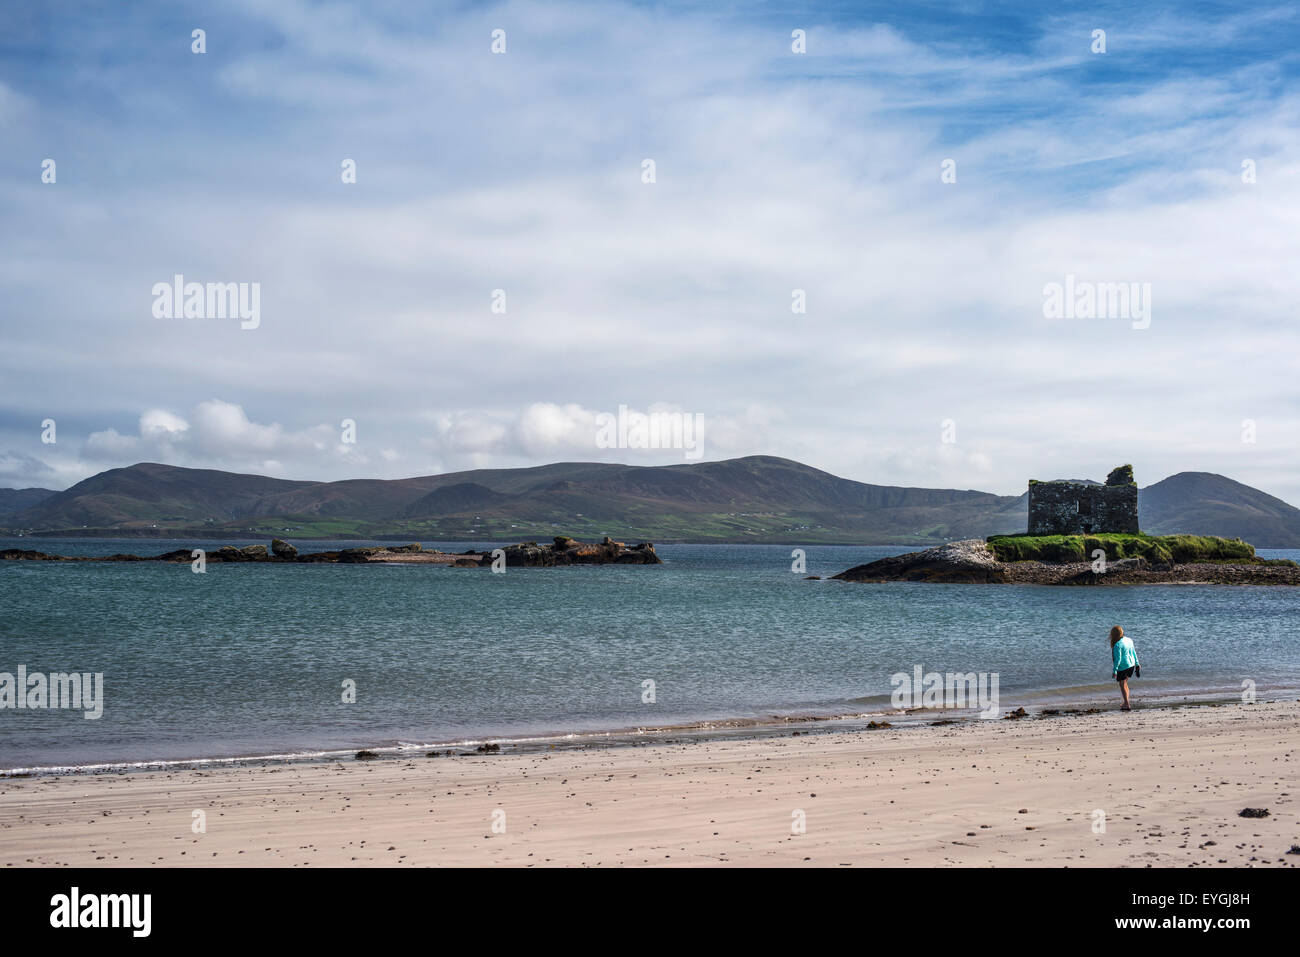 UK, Ireland, County Kerry, Woman walking on beach with Ballinskelligs Castle in background - Stock Image